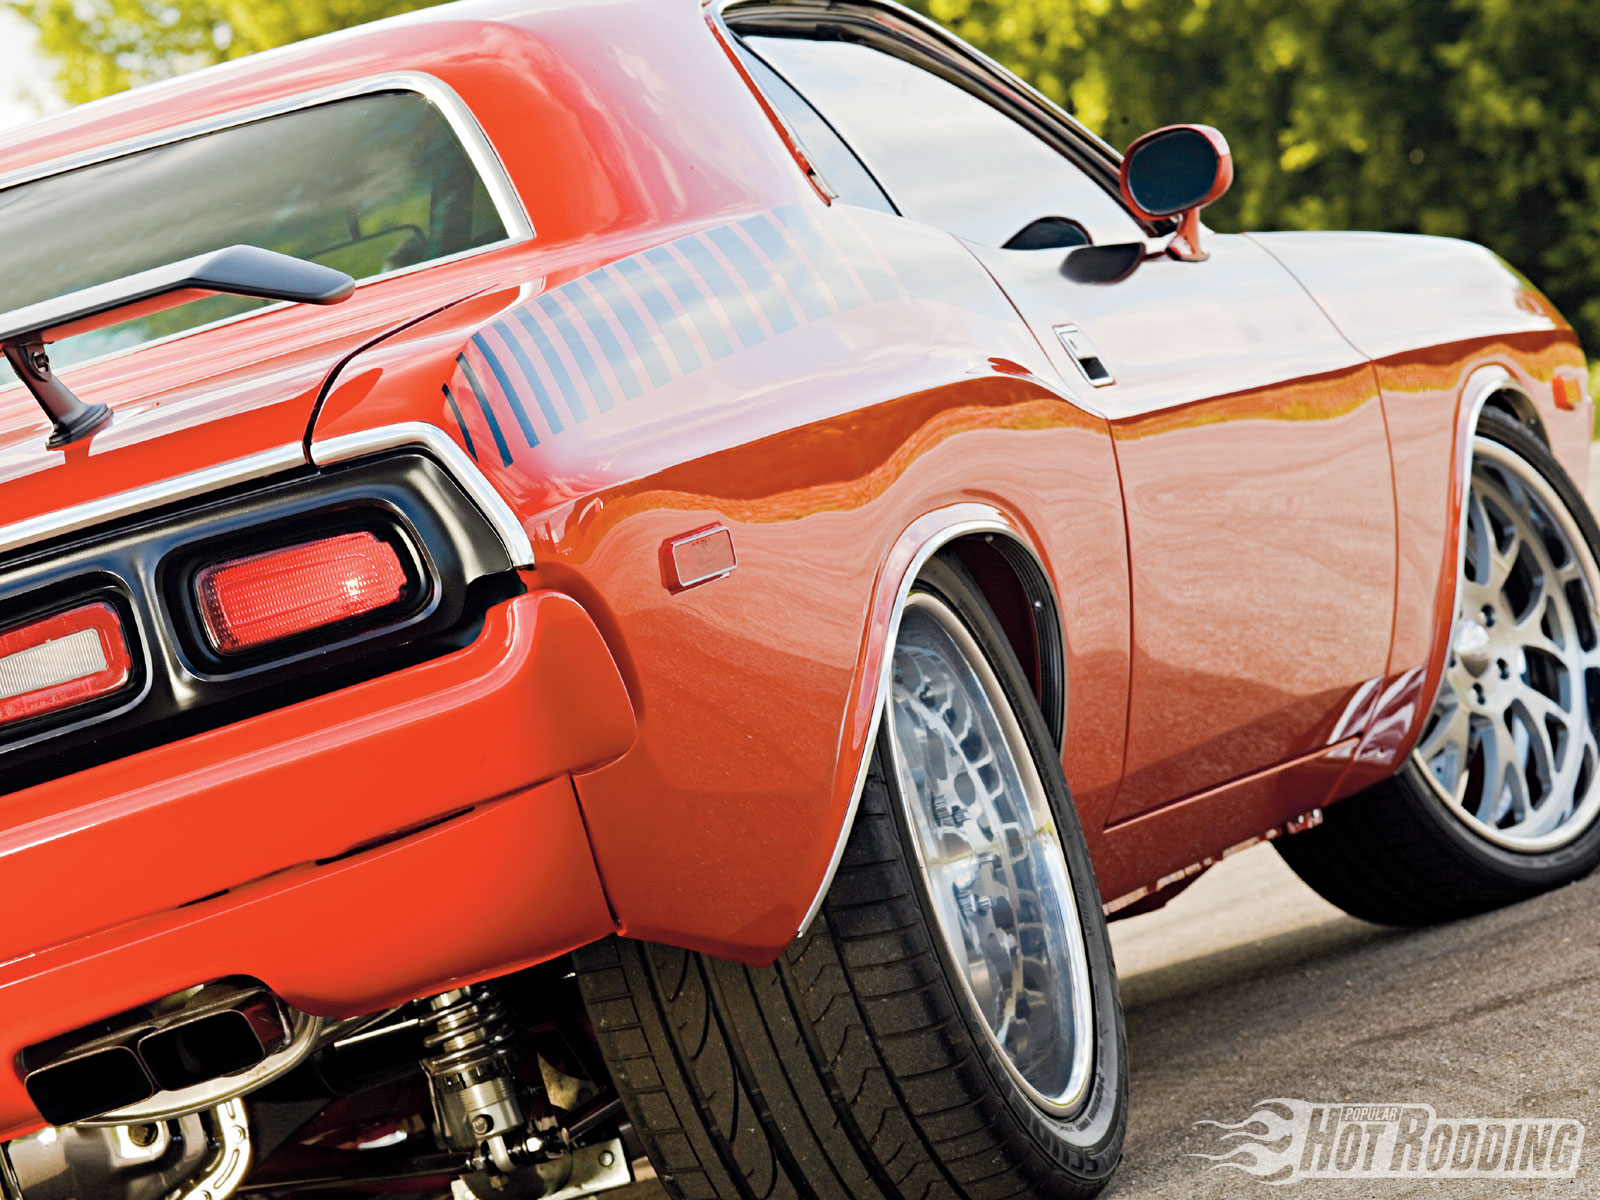 3840x1080 Wallpaper Classic Car 1973 Dodge Challenger Wallpaper And Background Image